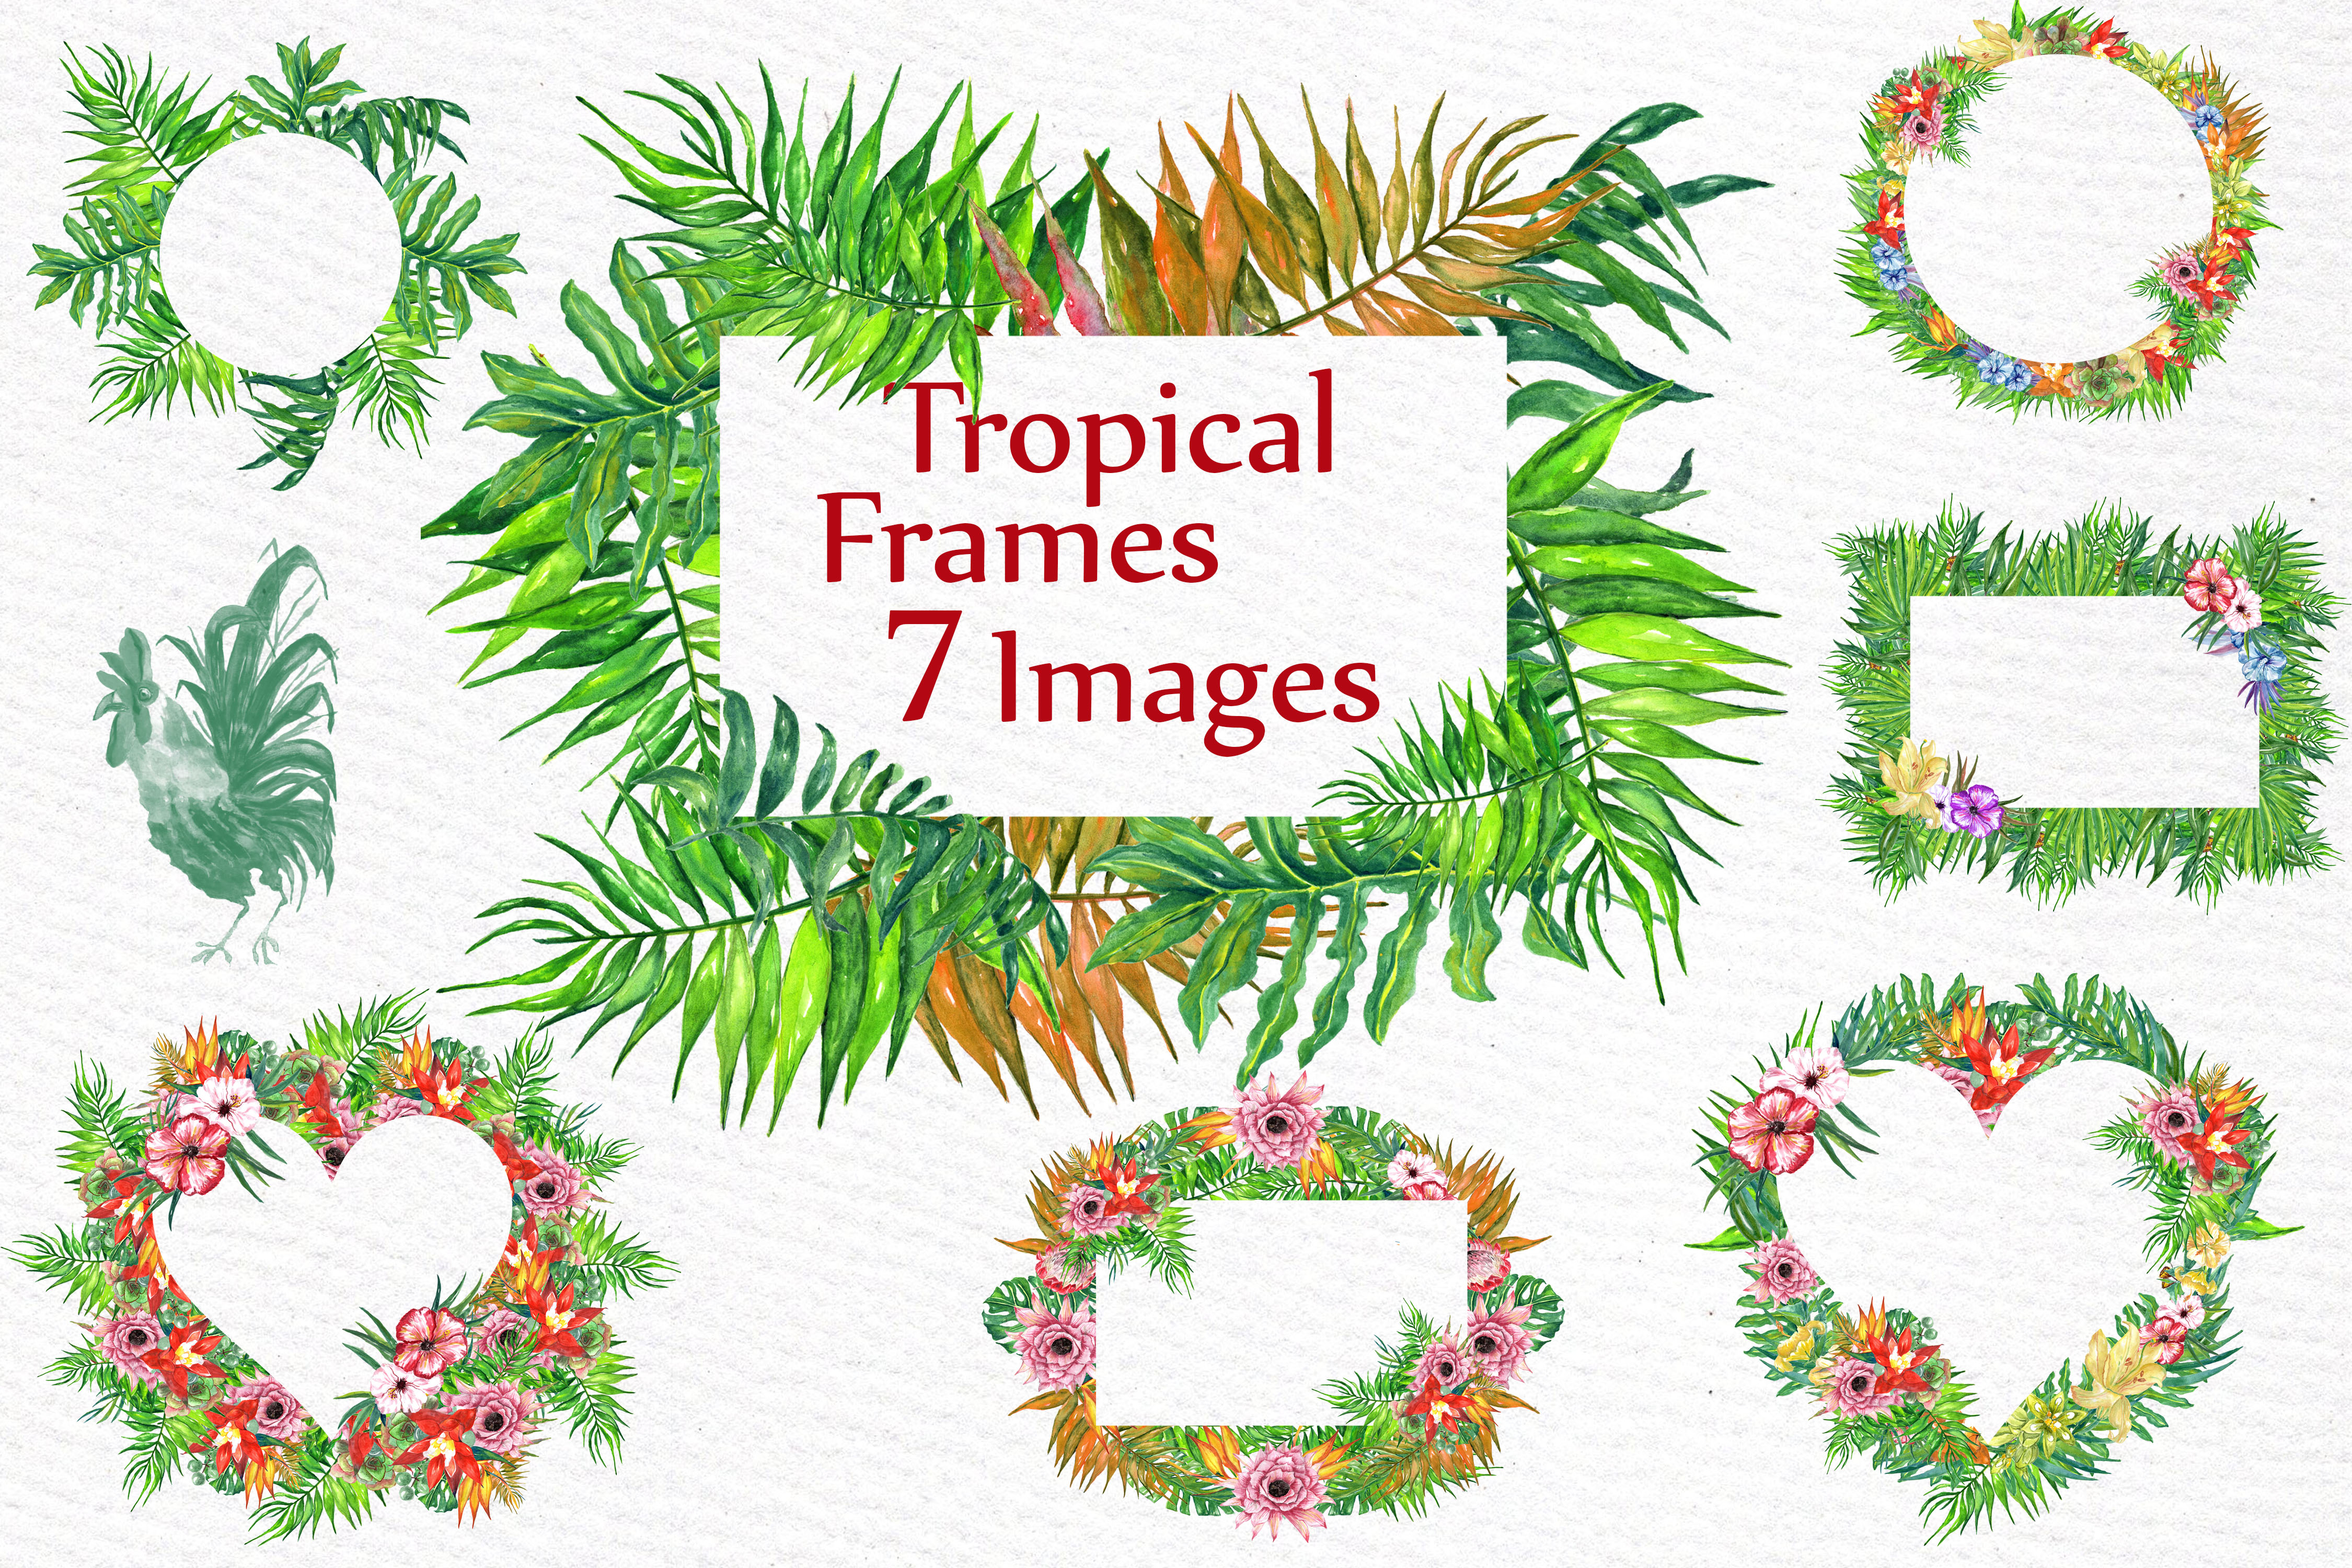 Download Free Watercolor Tropic Frames Clipart Tropical Clipart Tropical Leaves for Cricut Explore, Silhouette and other cutting machines.